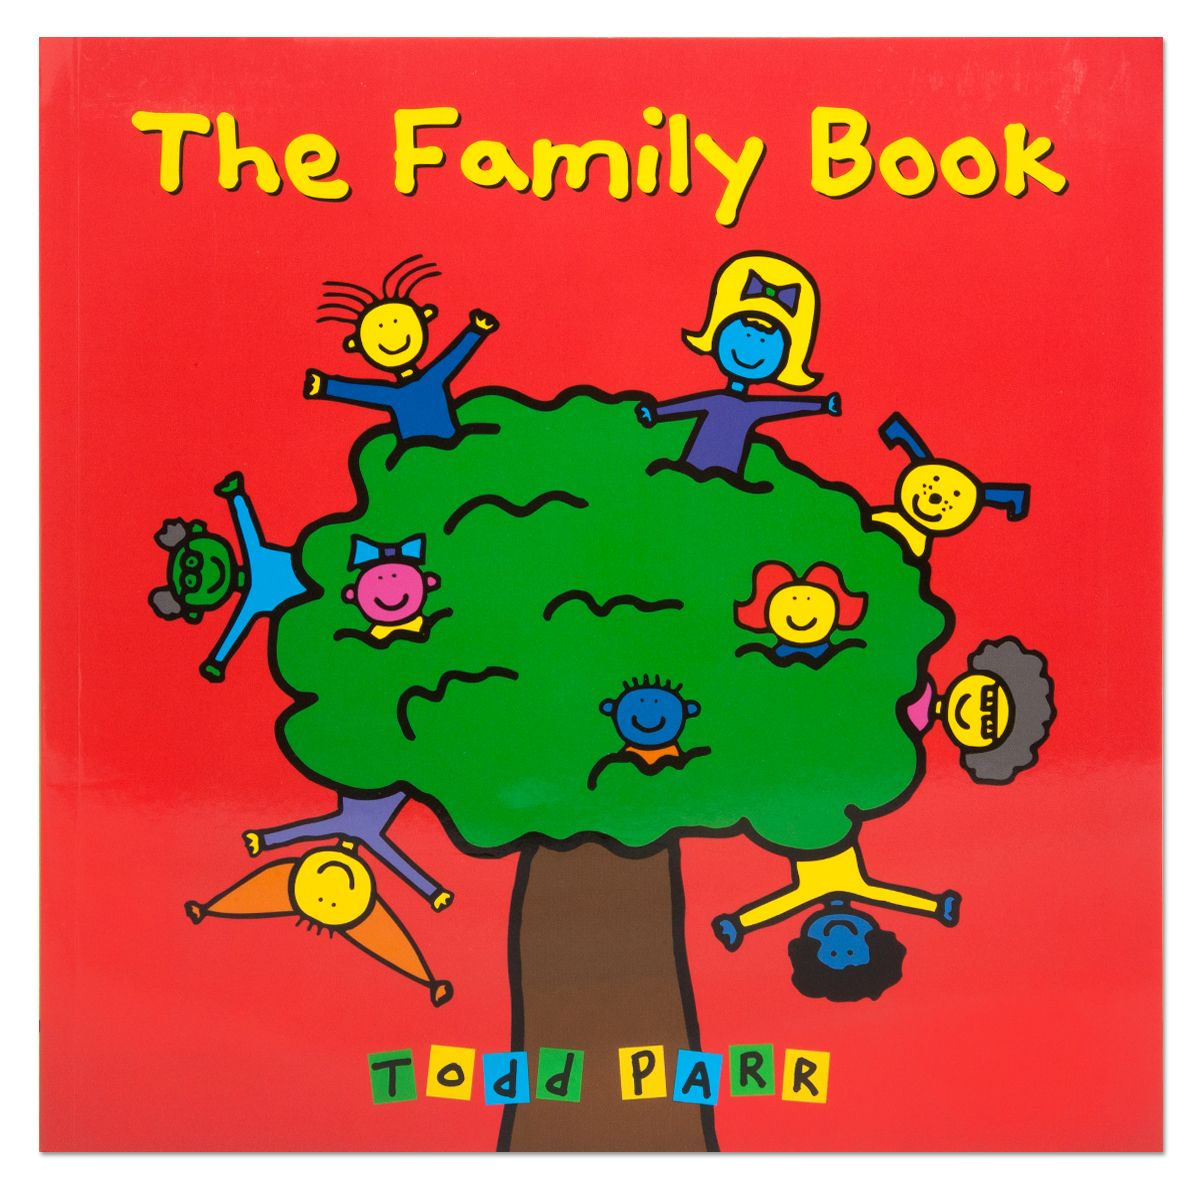 School Board Bans Kids Book For Mention Of Gay Families